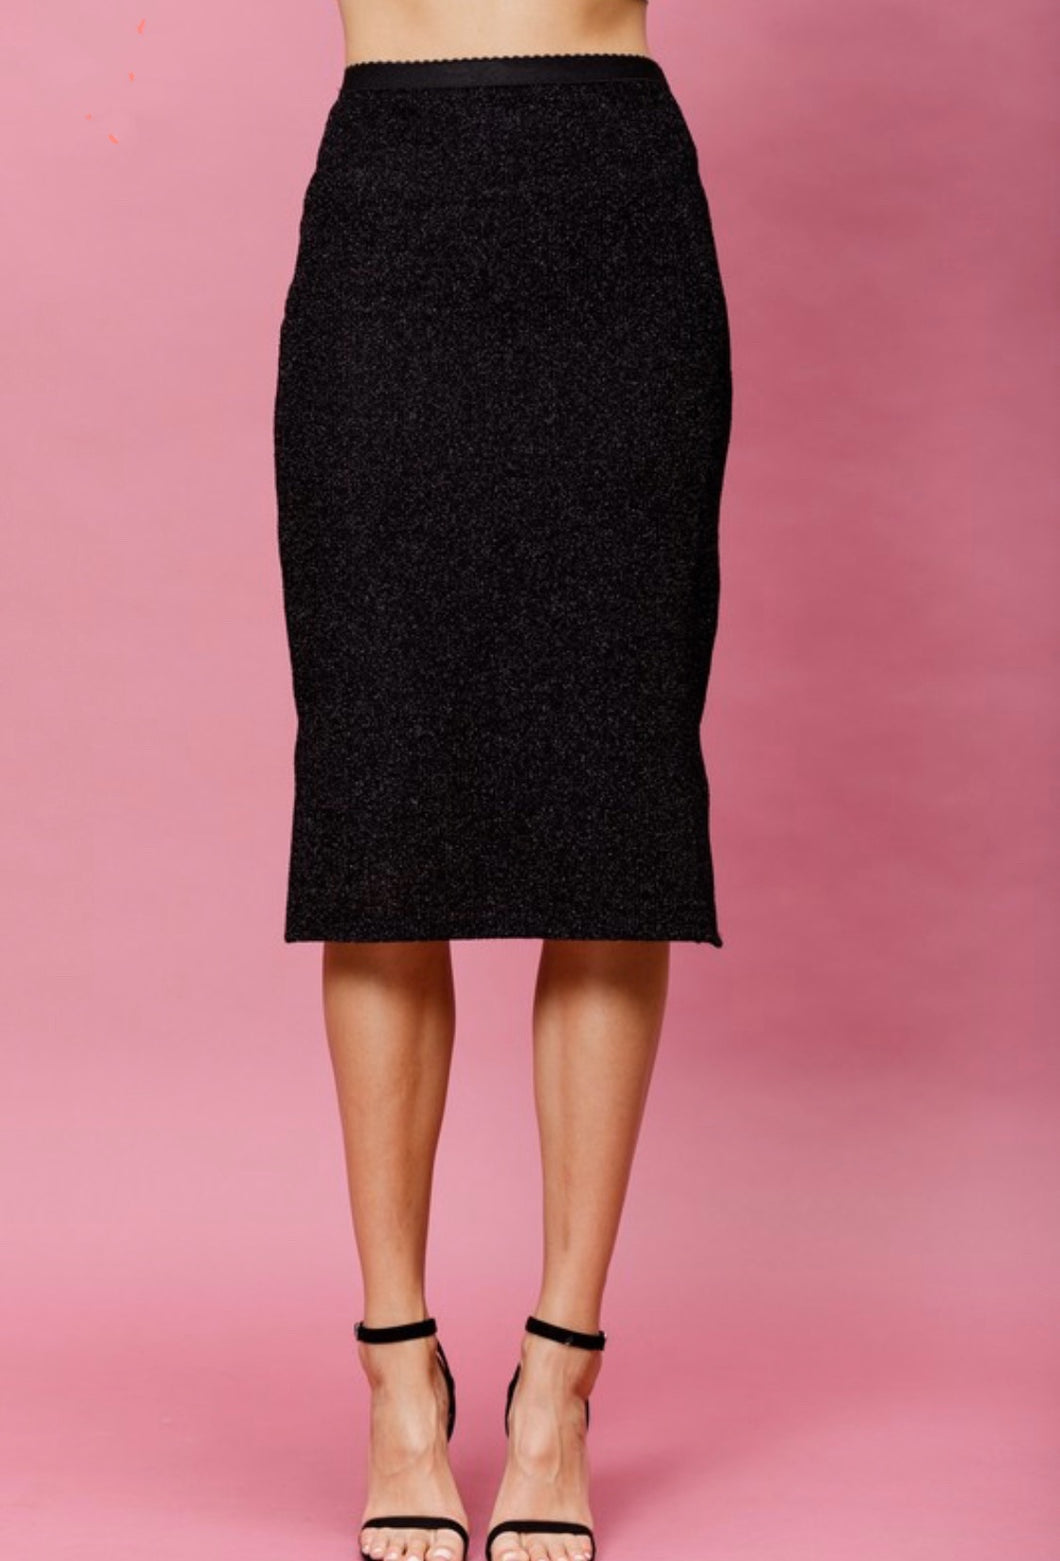 Onyx Metallic Pencil Skirt